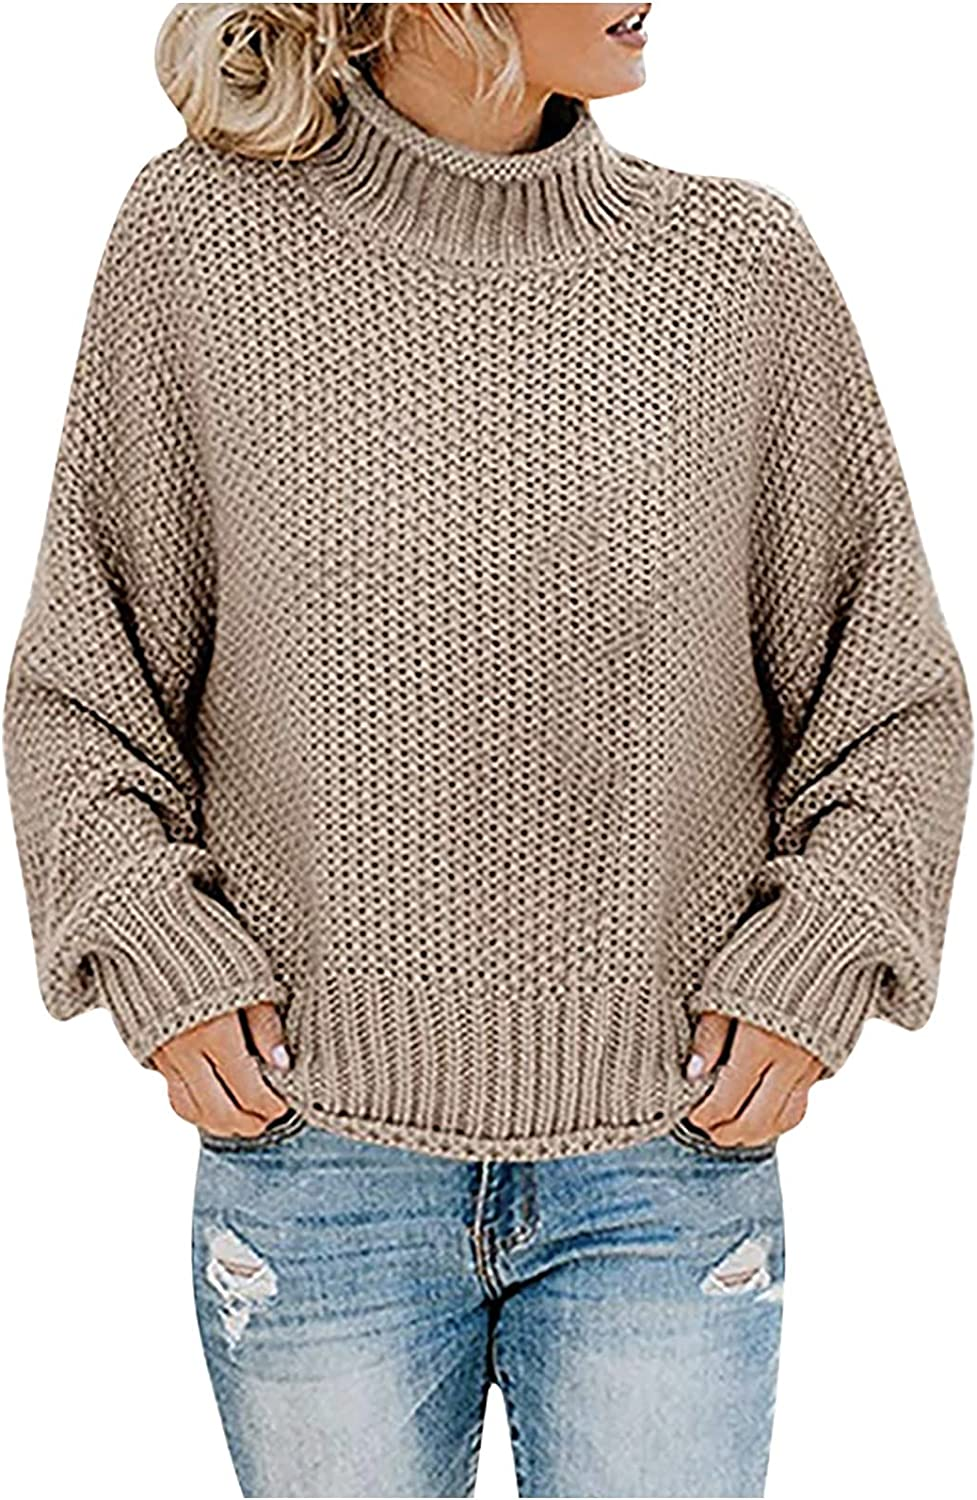 RFNIU Sweaters For Women Fall Fashion Casual Baby Blue Crew Neck Knit Pullover Shirt Loose Long Sleeve Blouses Tops